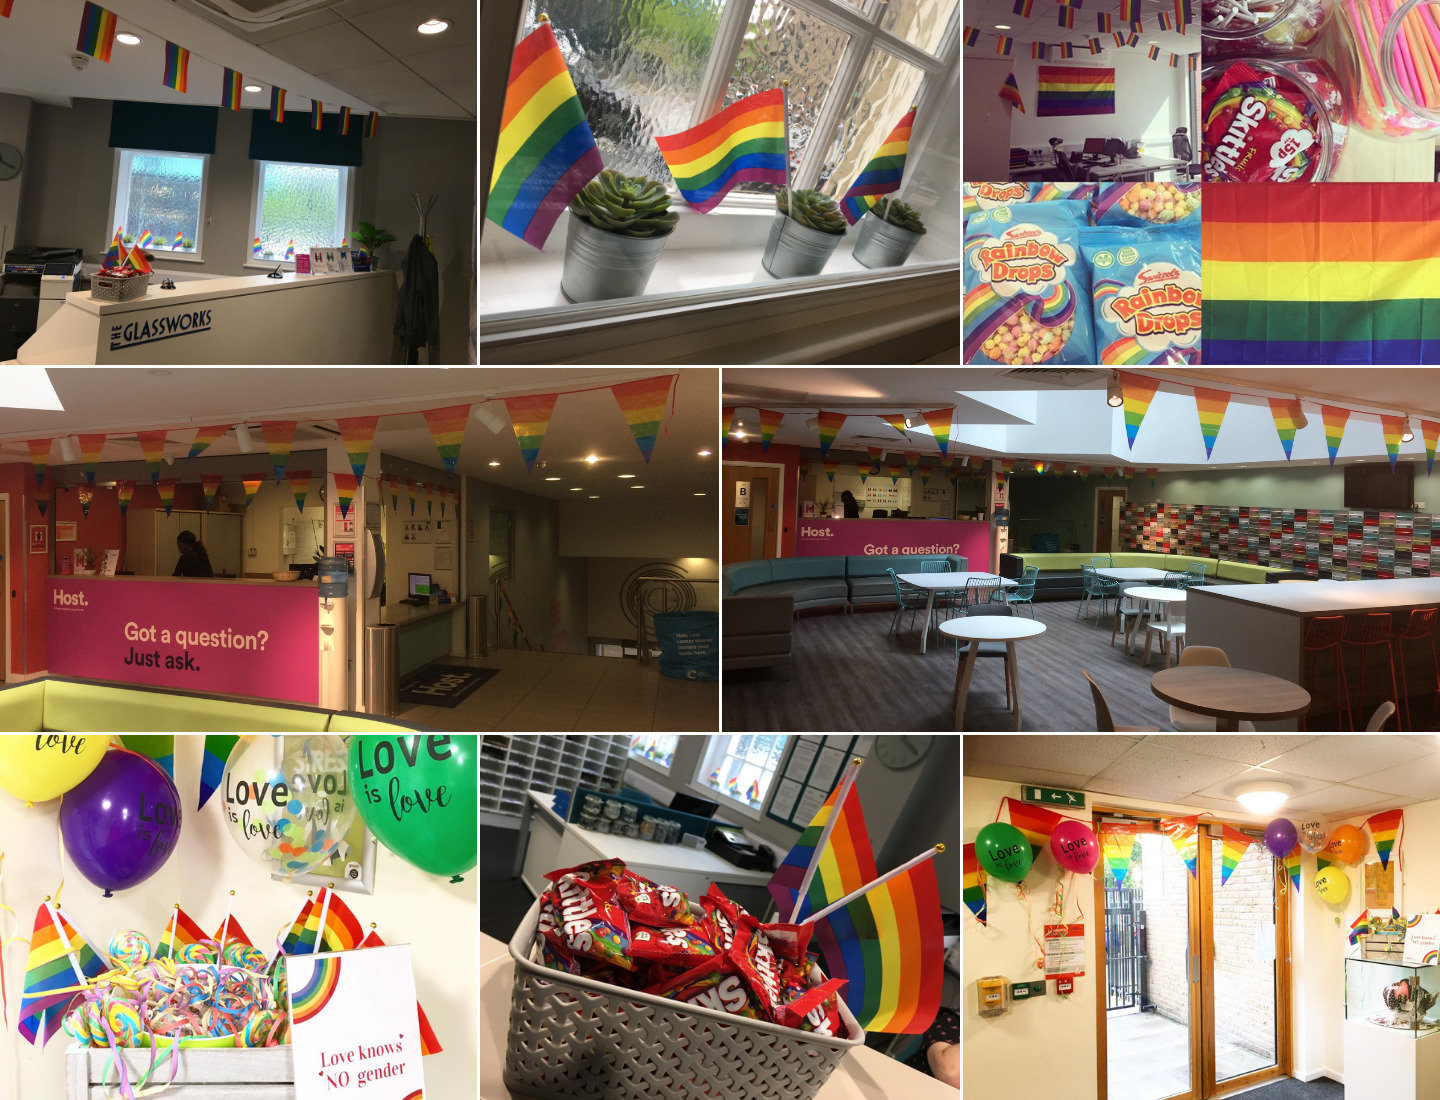 As Pride month comes to an end, we take a look at what some of our sites have been up to through out June.